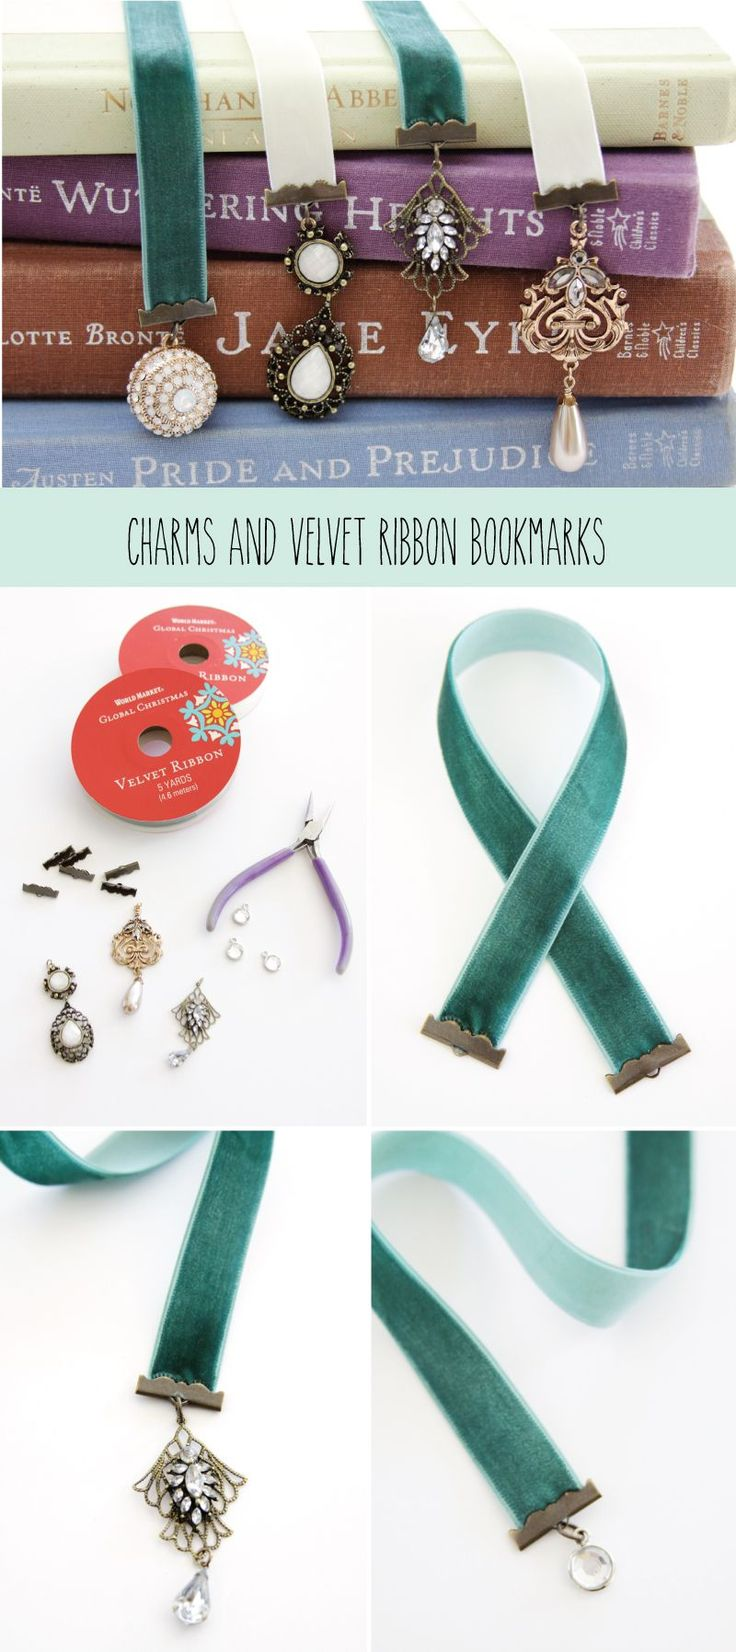 Charm and Velvet Ribbon Bookmarks